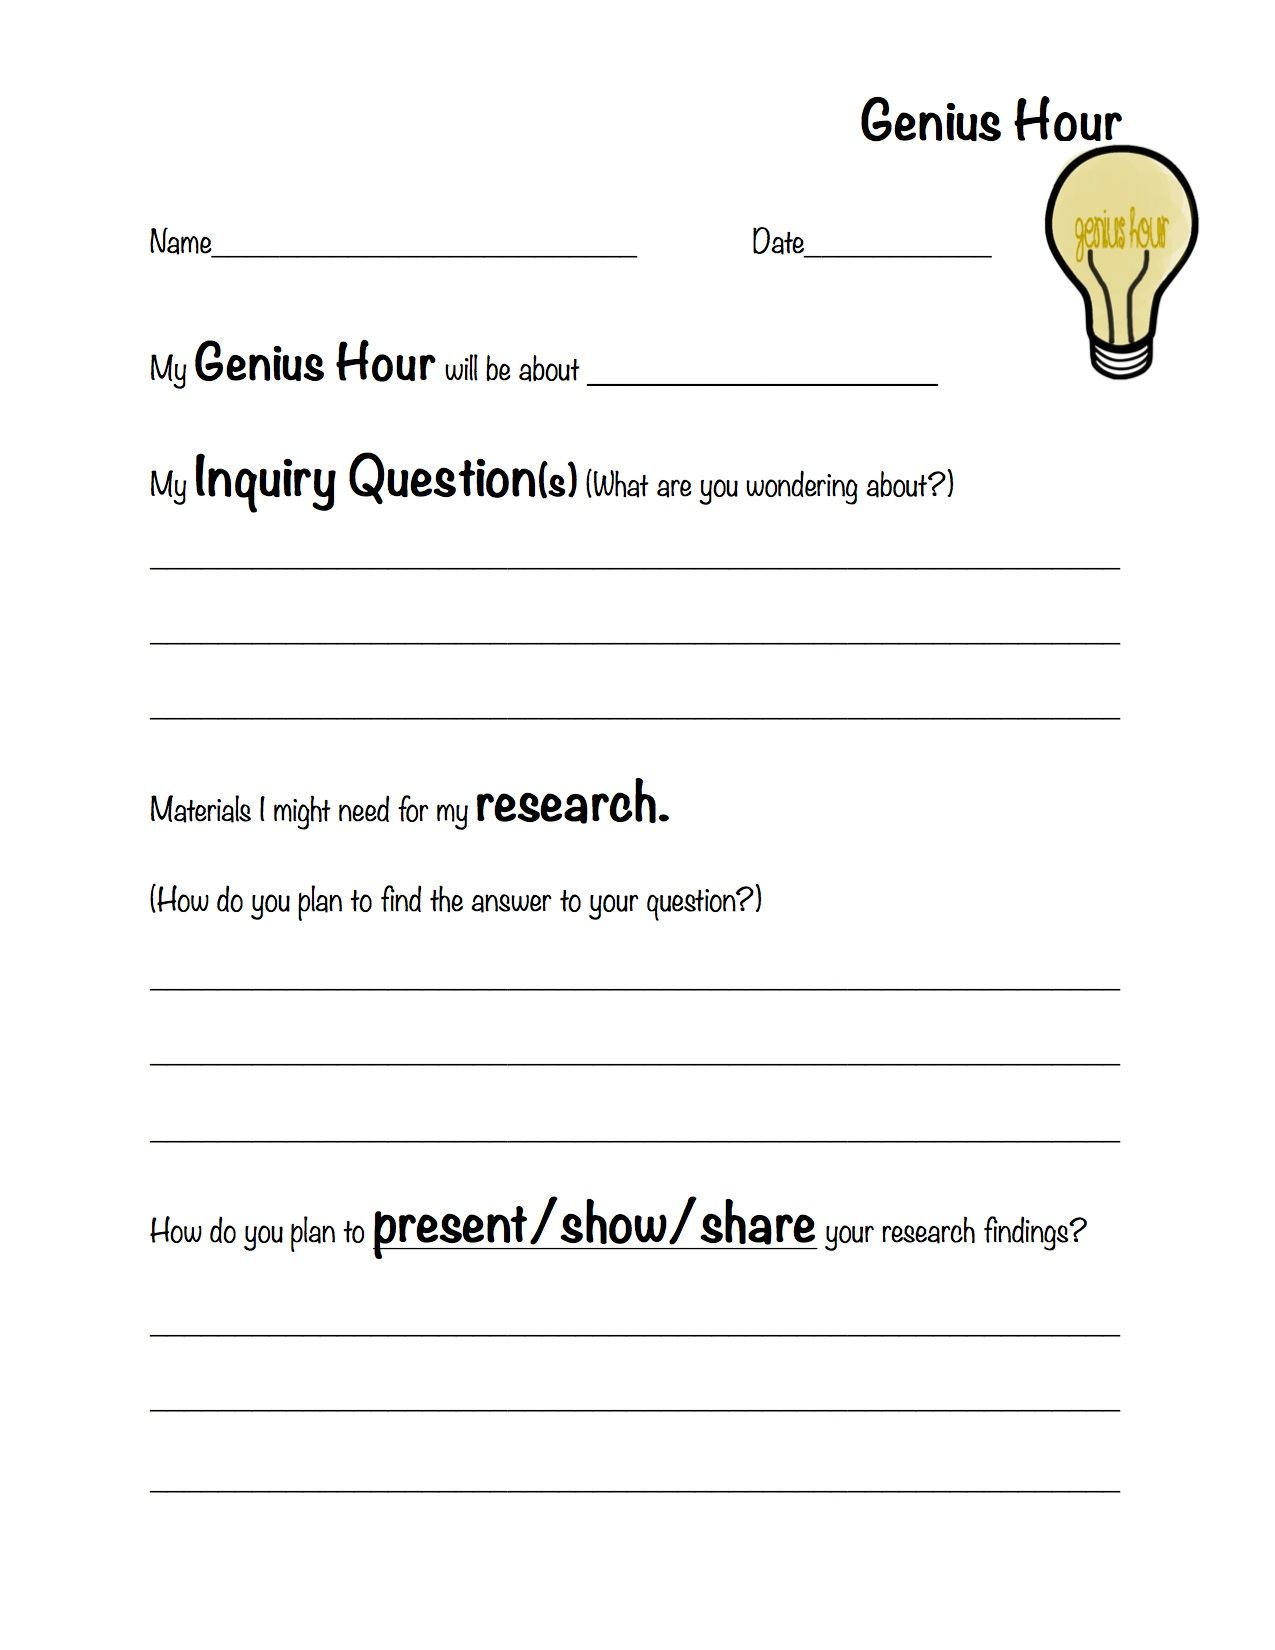 genius hour plan made this up to use in class genius hour pinterest genius hour school. Black Bedroom Furniture Sets. Home Design Ideas